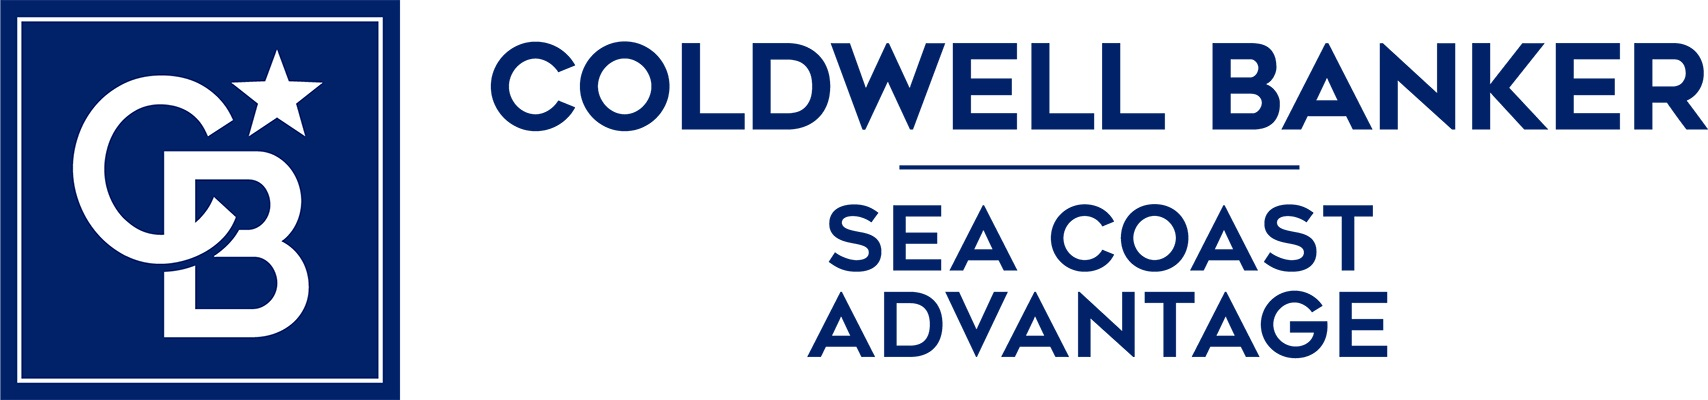 Krystal Jones - Coldwell Banker Sea Coast Advantage Realty Logo